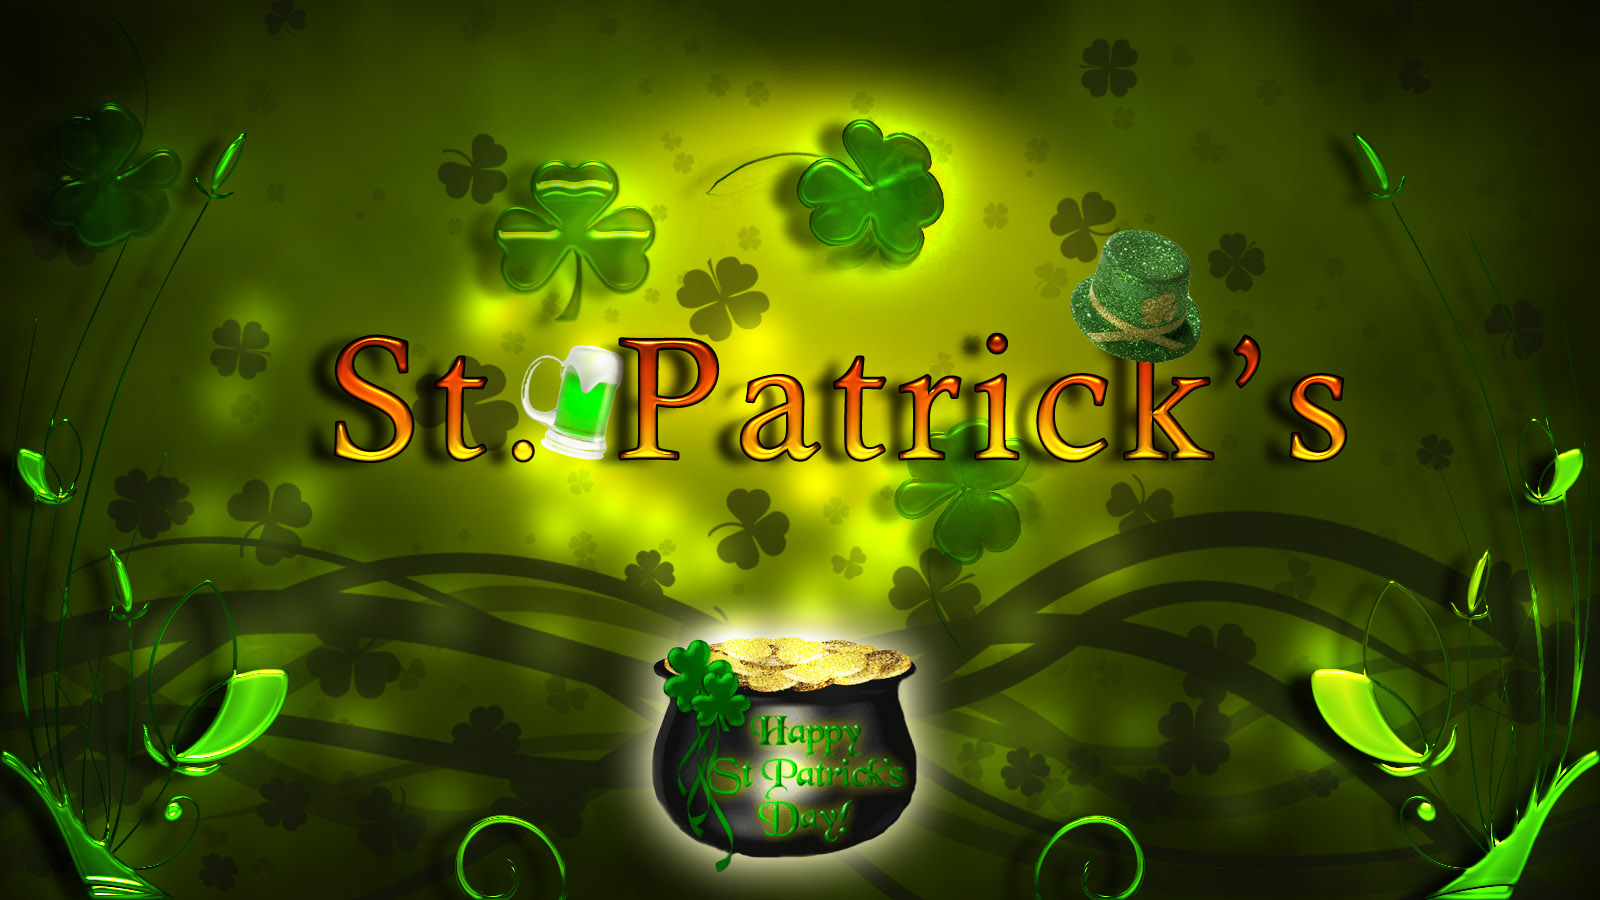 Happy St. Patrick's Day 2017 Image for Whatsapp